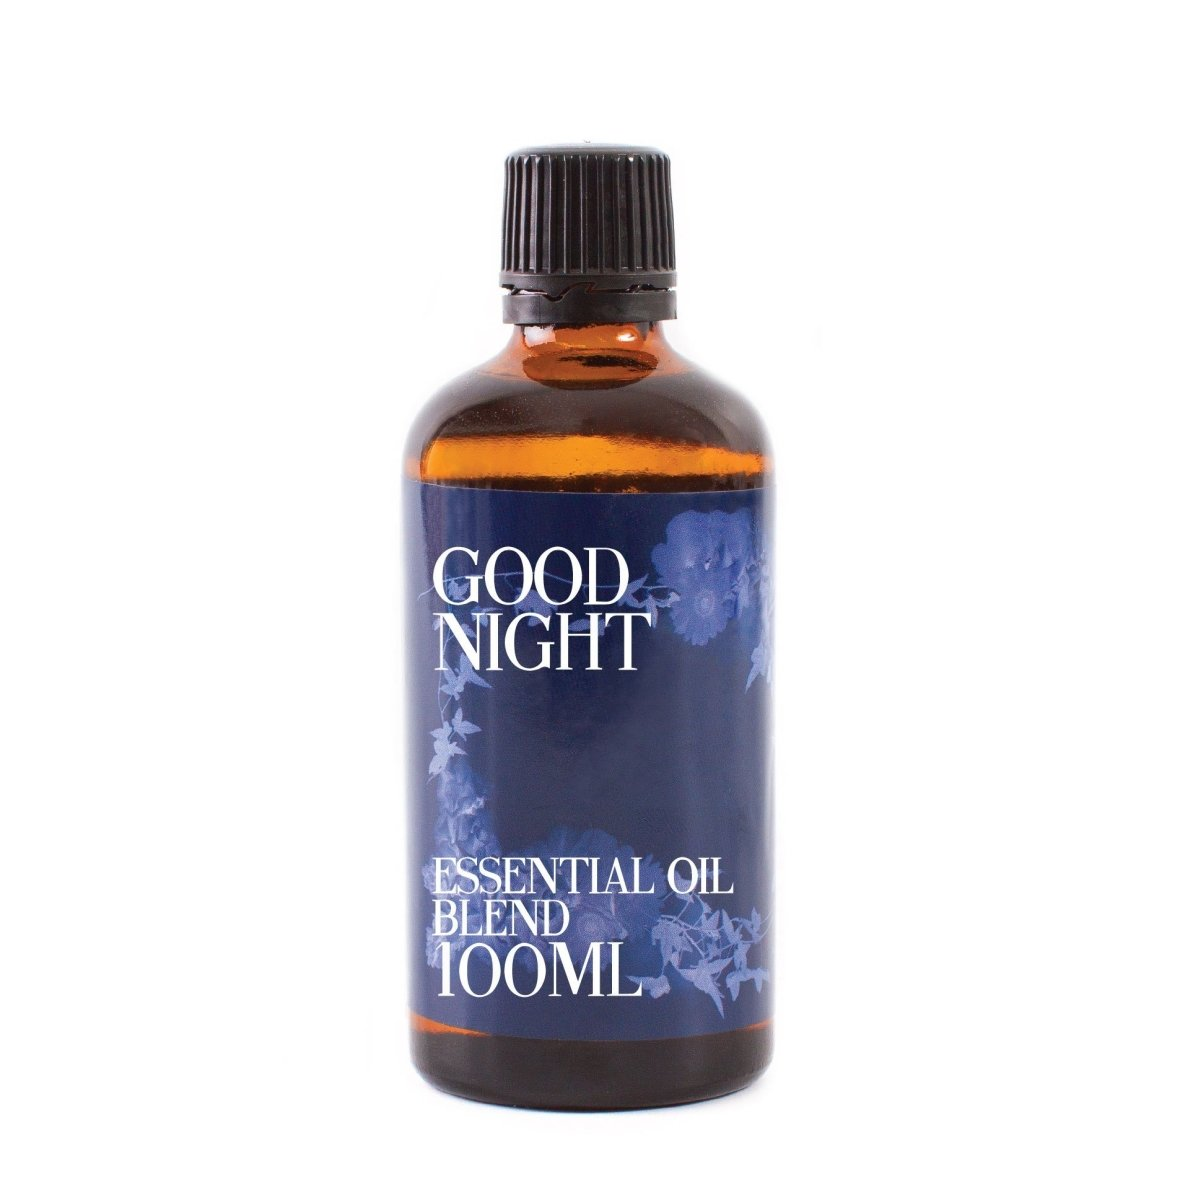 Good Night - Essential Oil Blends - Mystic Moments UK